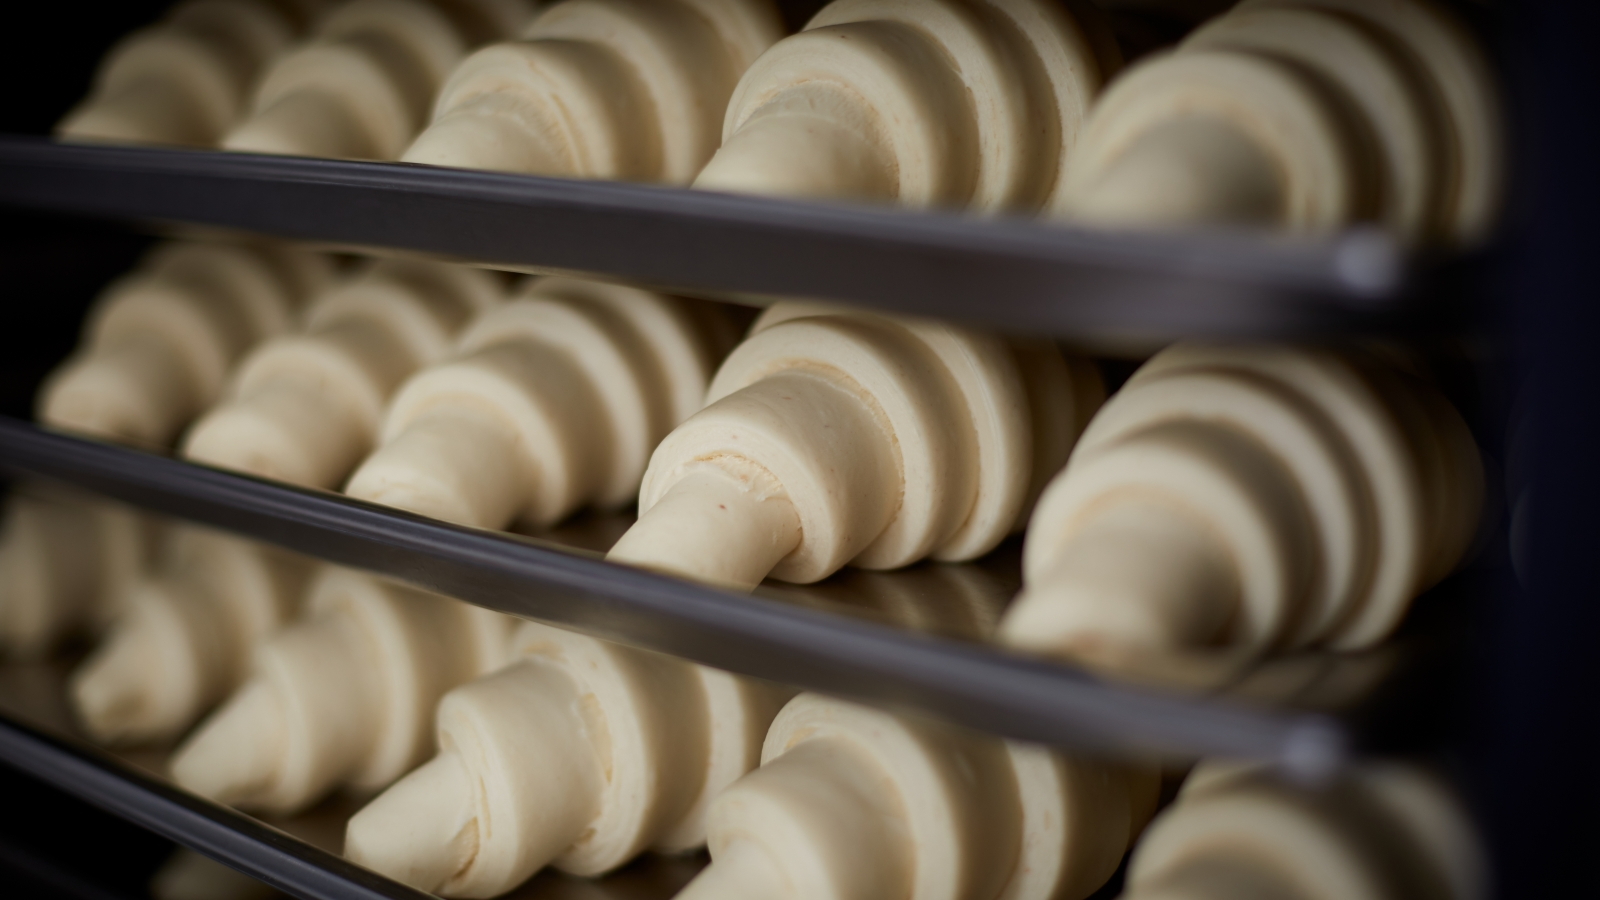 Inside Diana's company that produces and sells a variety of croissants